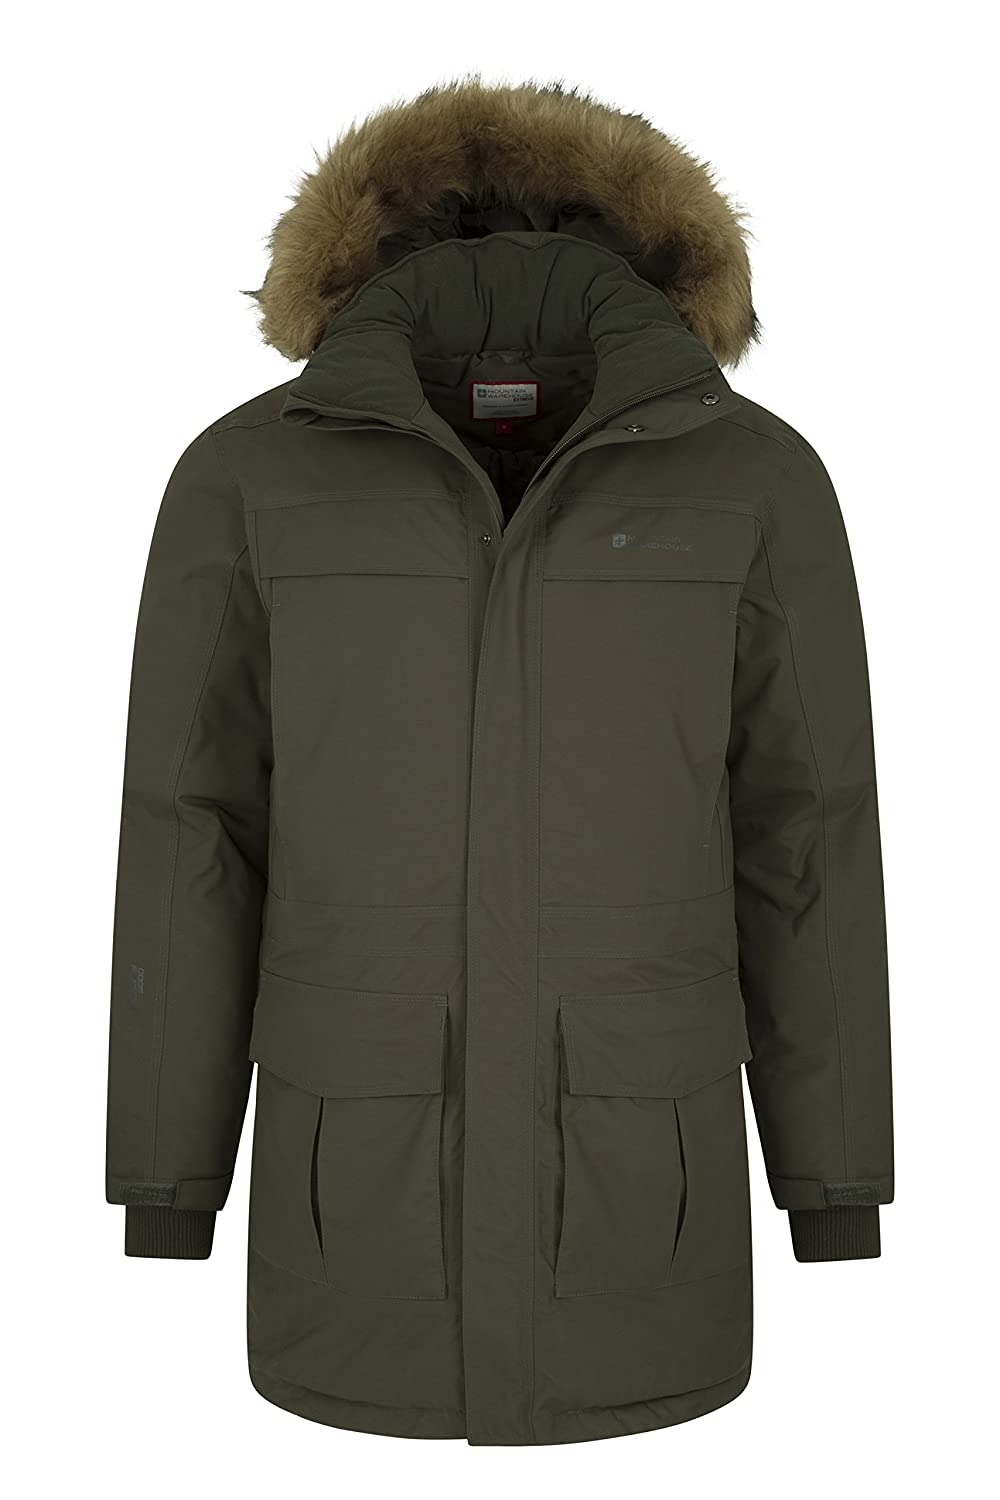 Mountain Warehouse Antarctic Extreme Down Mens Jacket Ideal Outer in Cold Weather Quick Drying /& Breathable Winter Coat Waterproof Rain Coat Adjustable Waist